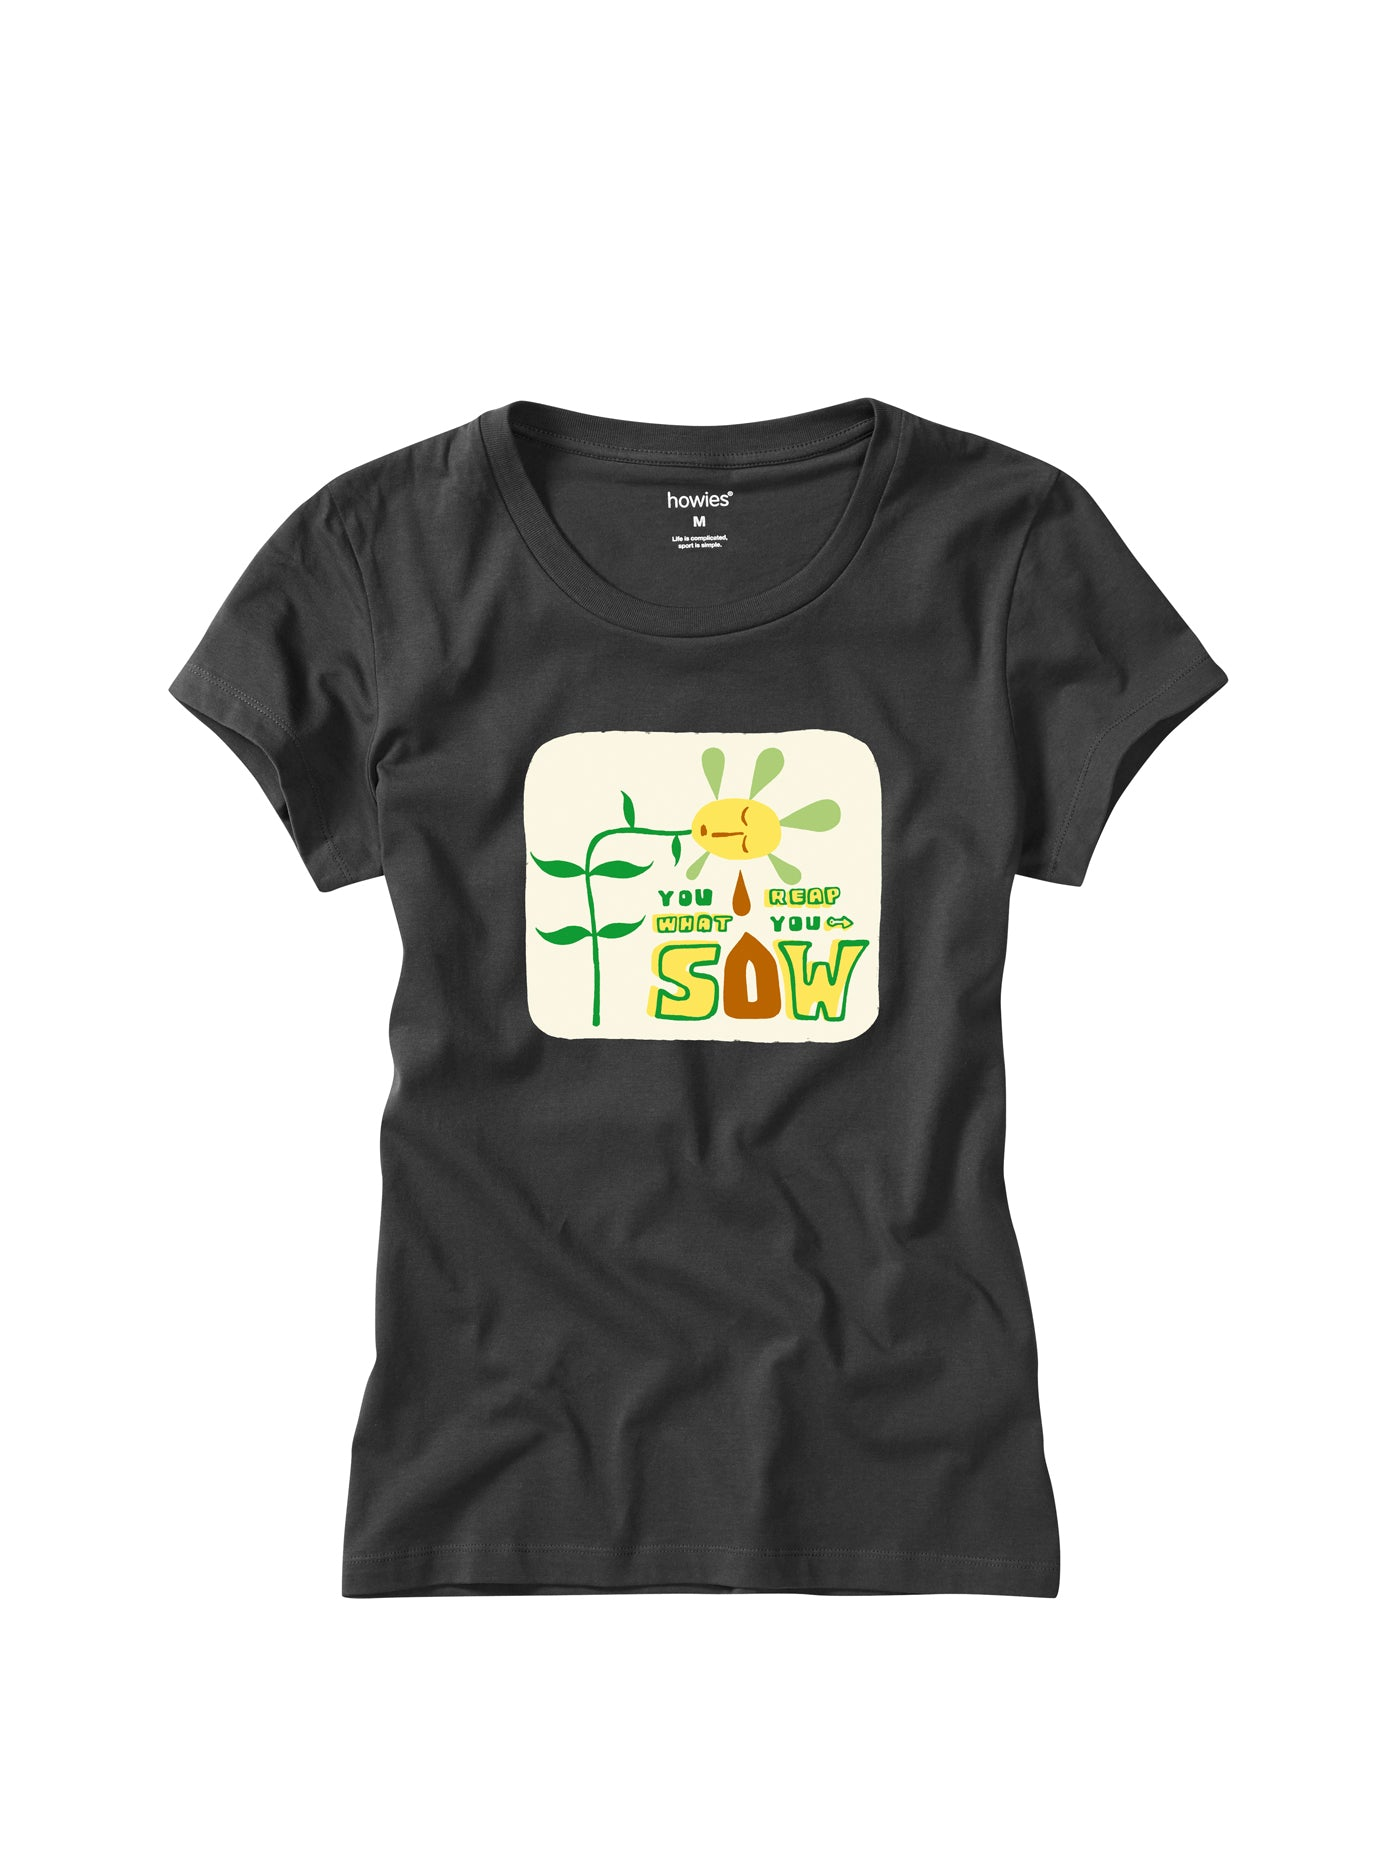 Howies Reap What You Sow Tee for Ladies in Black